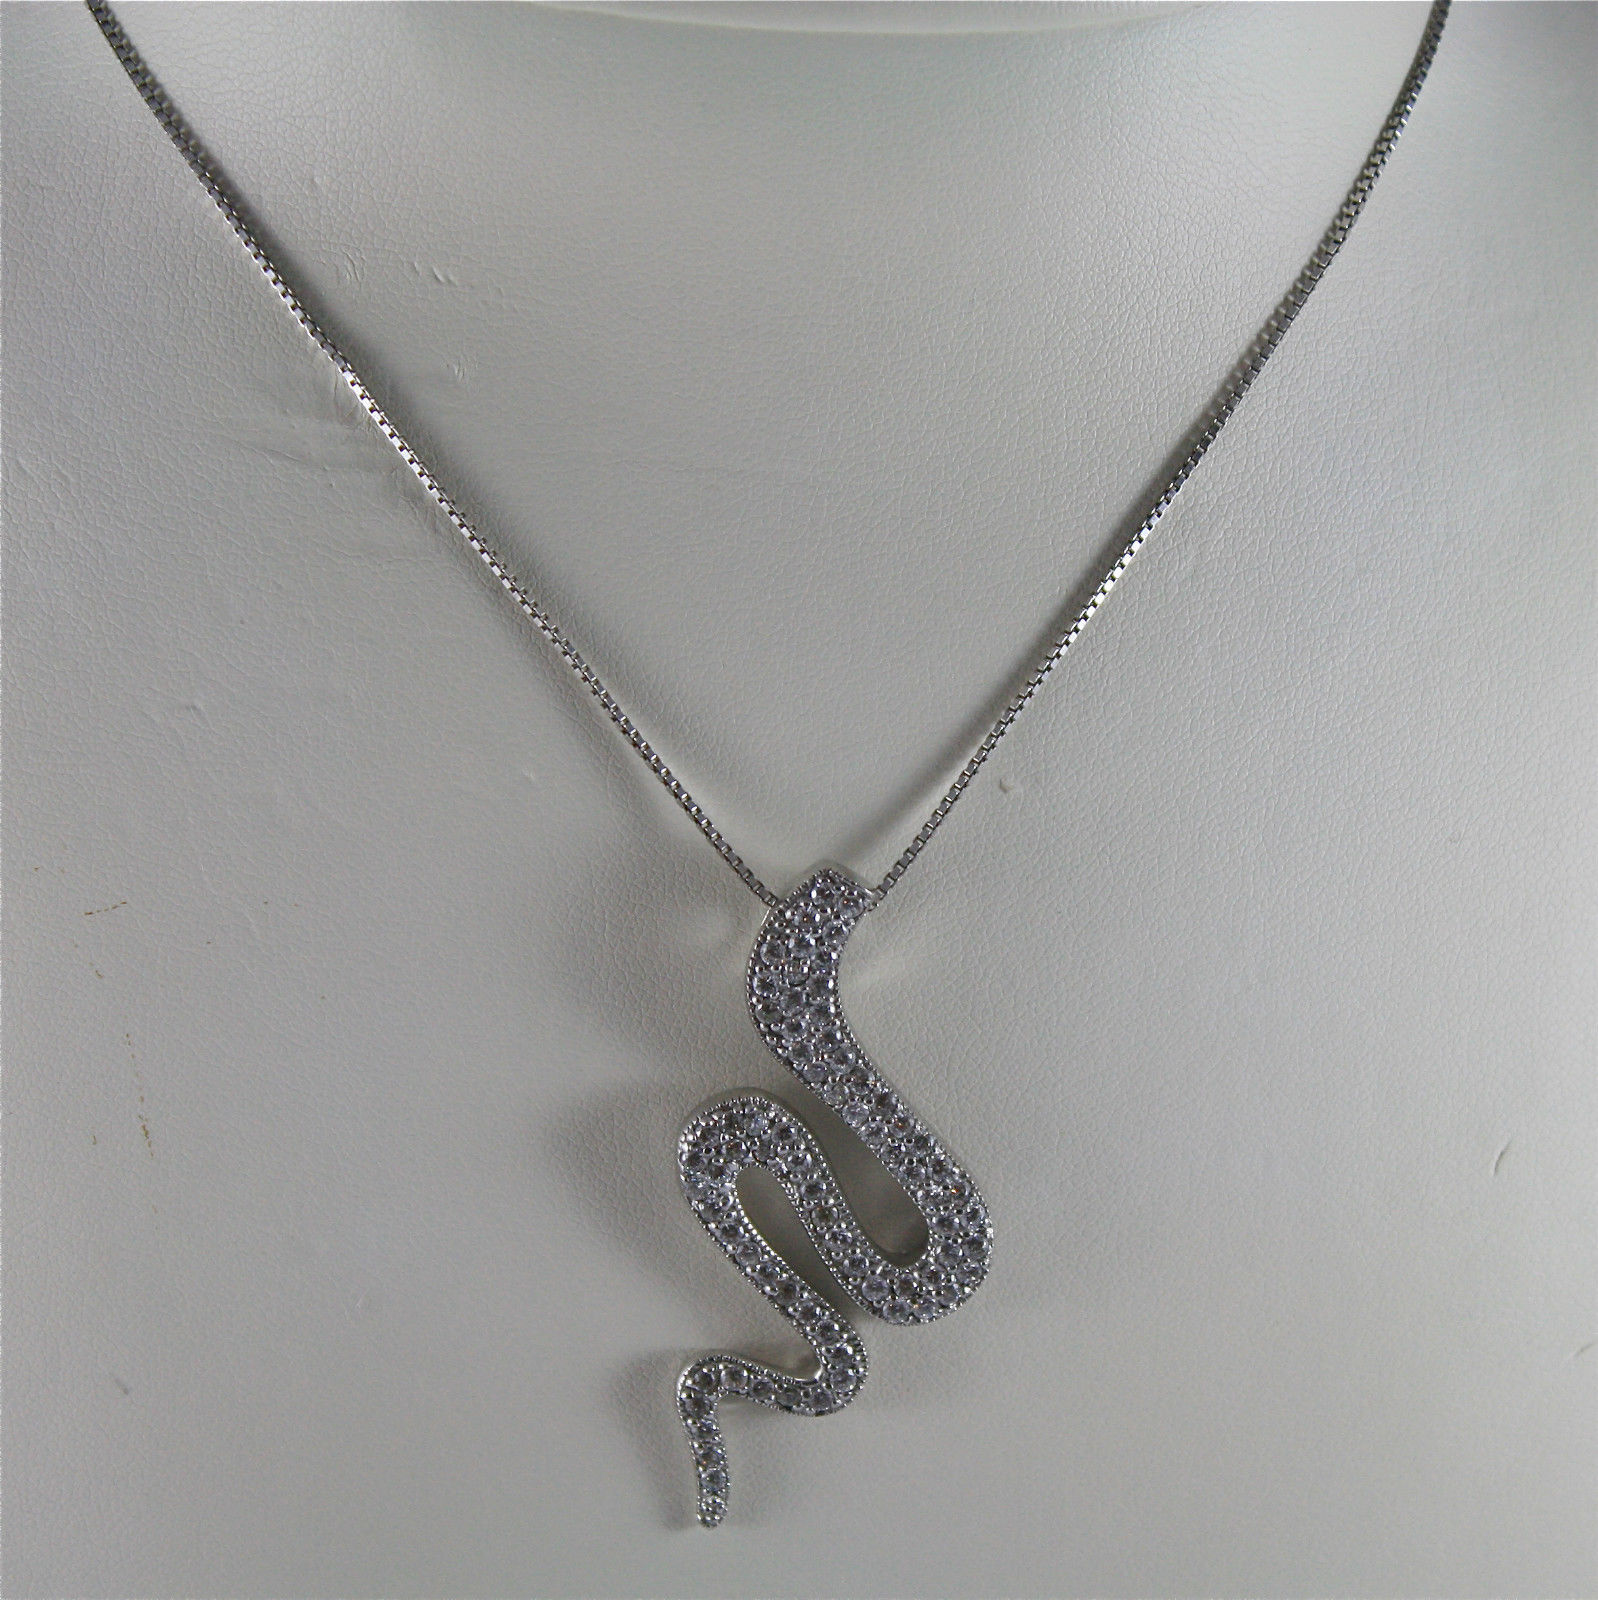 .925 RHODIUM SILVER NECKLACE, 15,75 In, EMBEDDED ZIRCONIA PENDANT, SNAKE SHAPE.